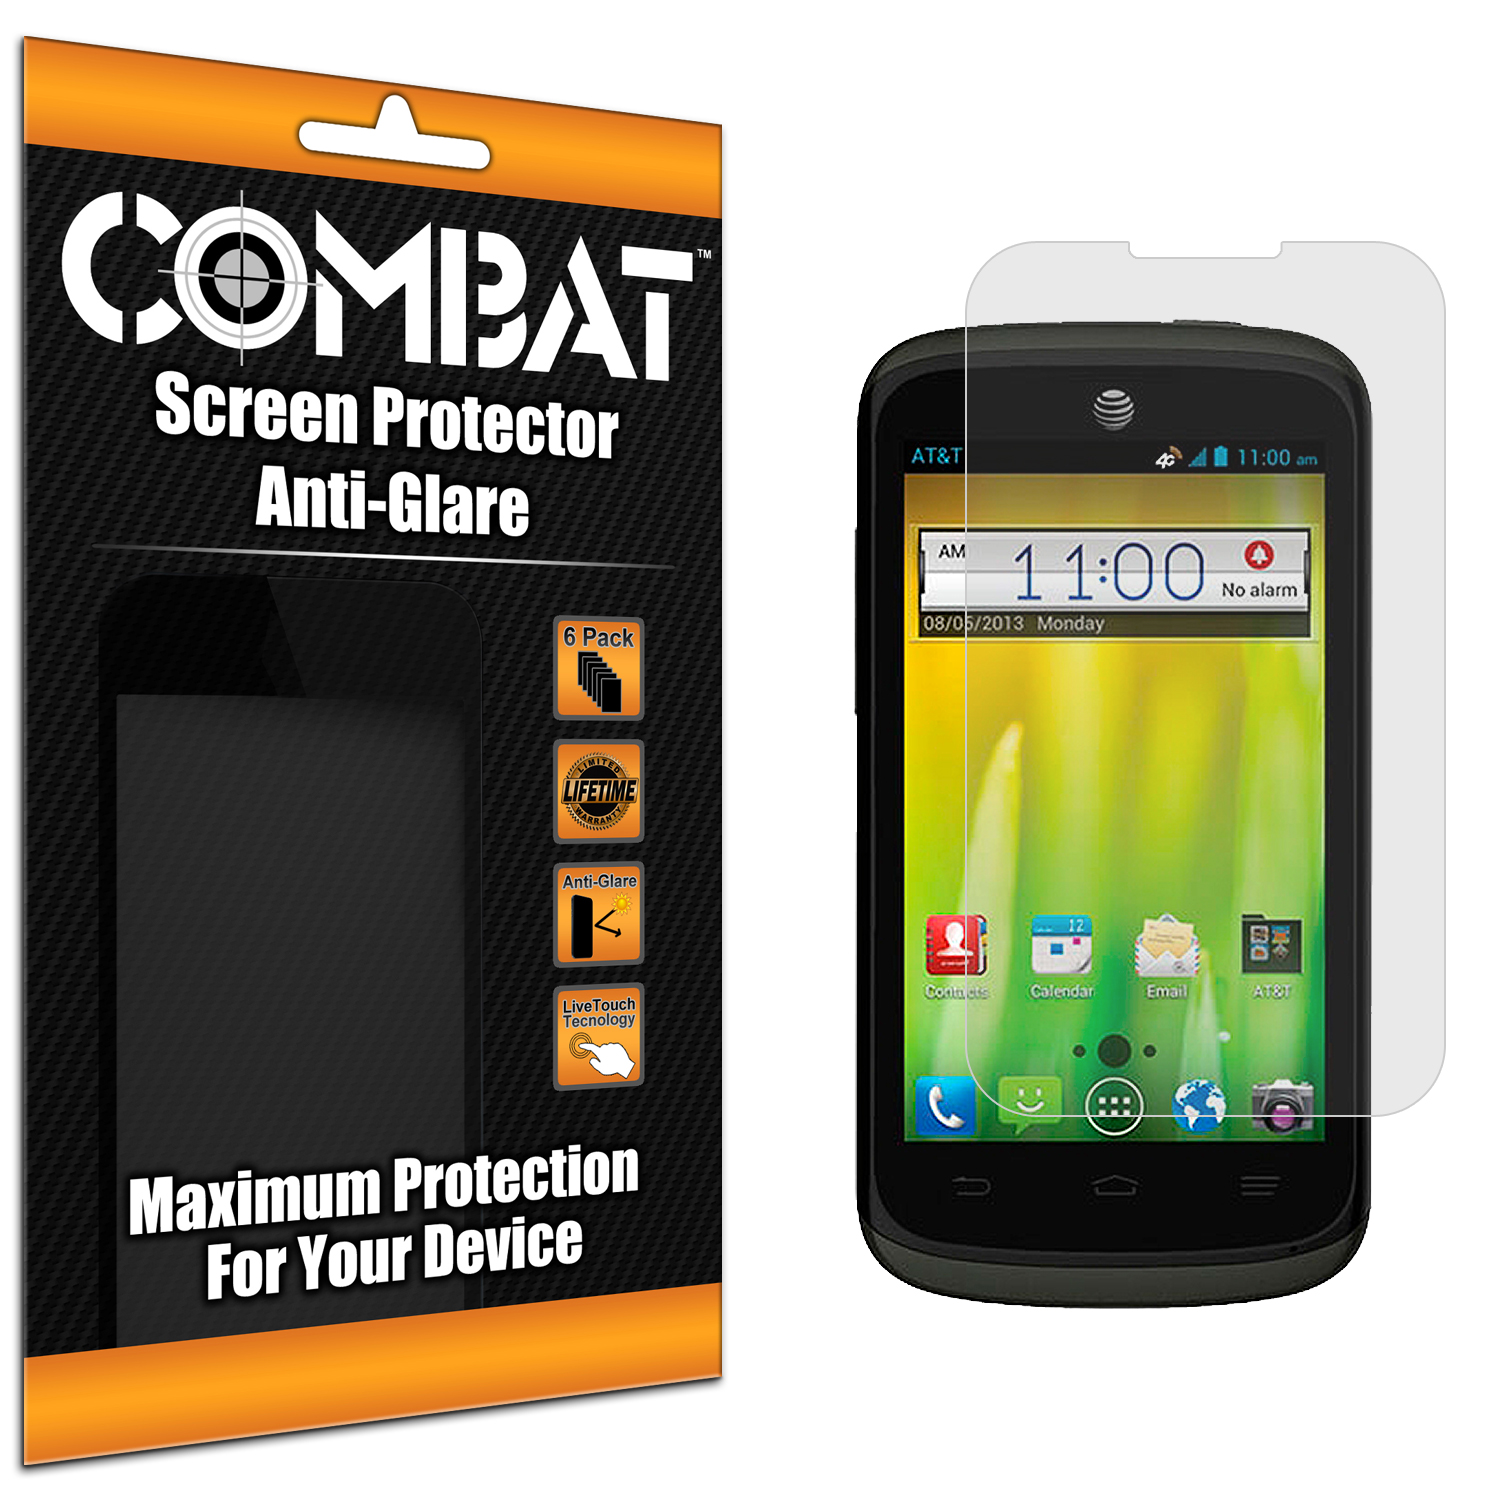 ZTE Radiant Combat 6 Pack Anti-Glare Matte Screen Protector